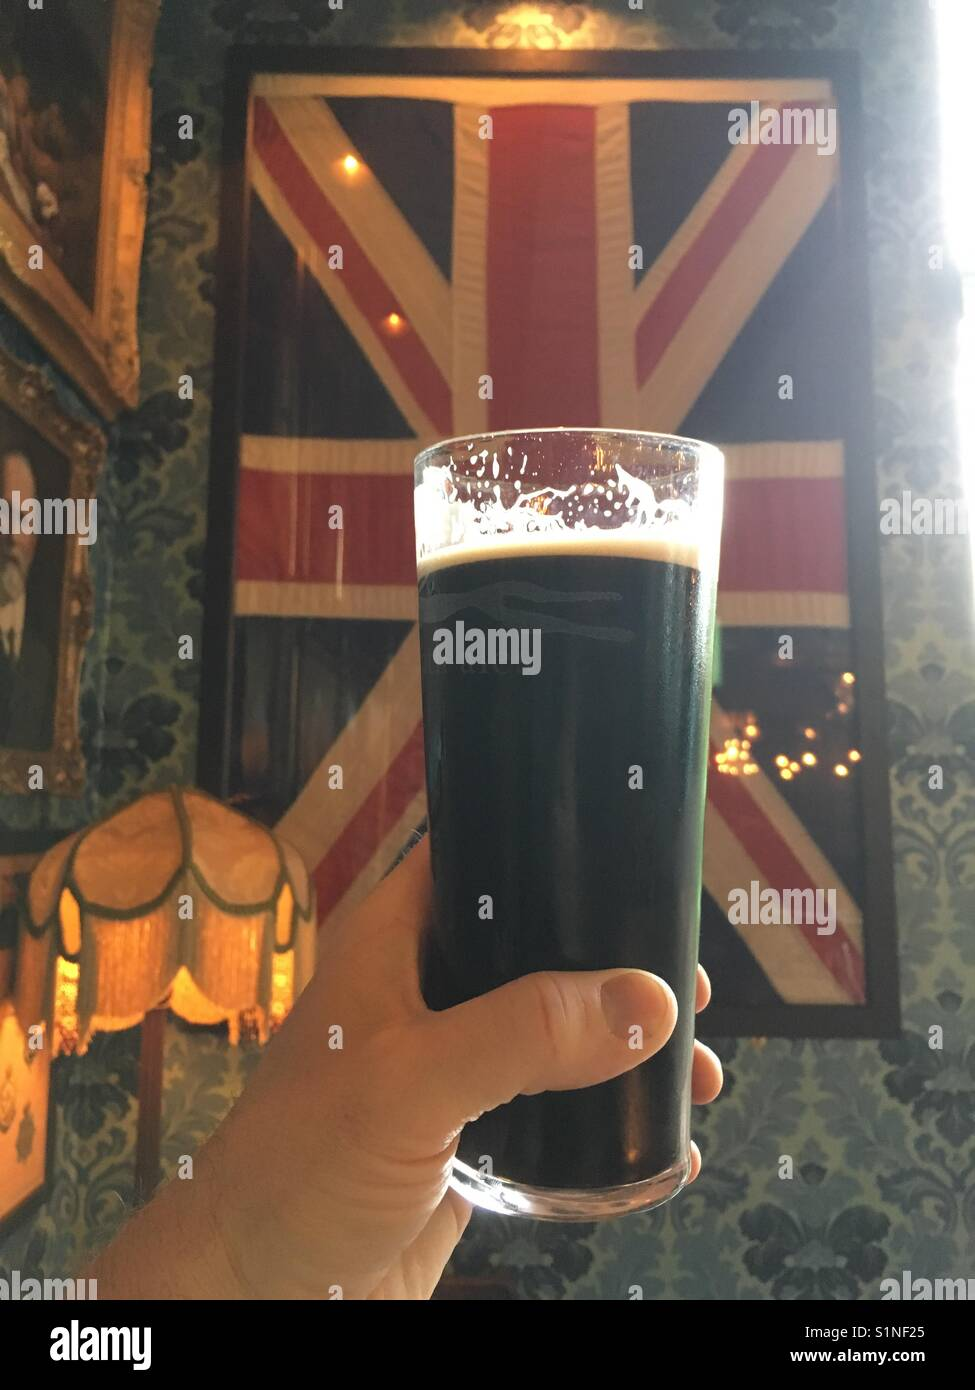 A pint of Stout. - Stock Image